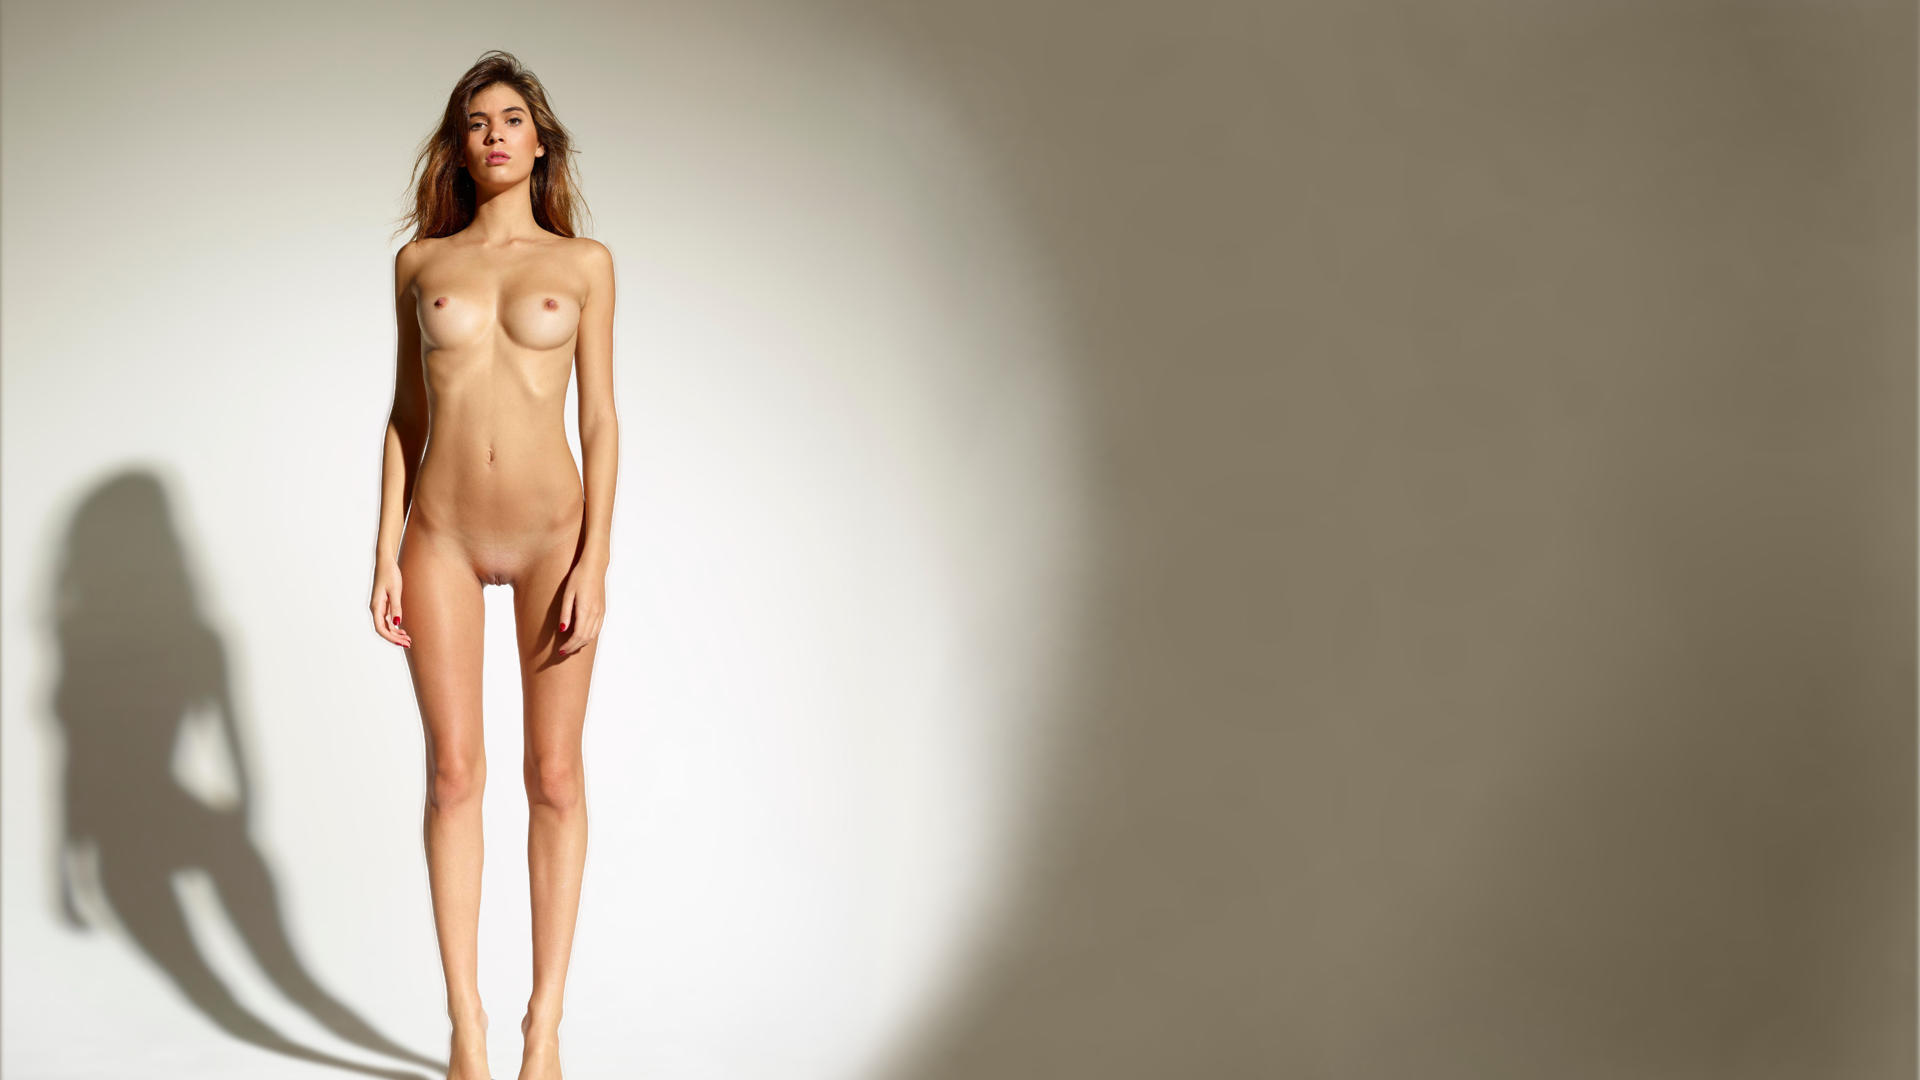 Hairy blonde naked woman